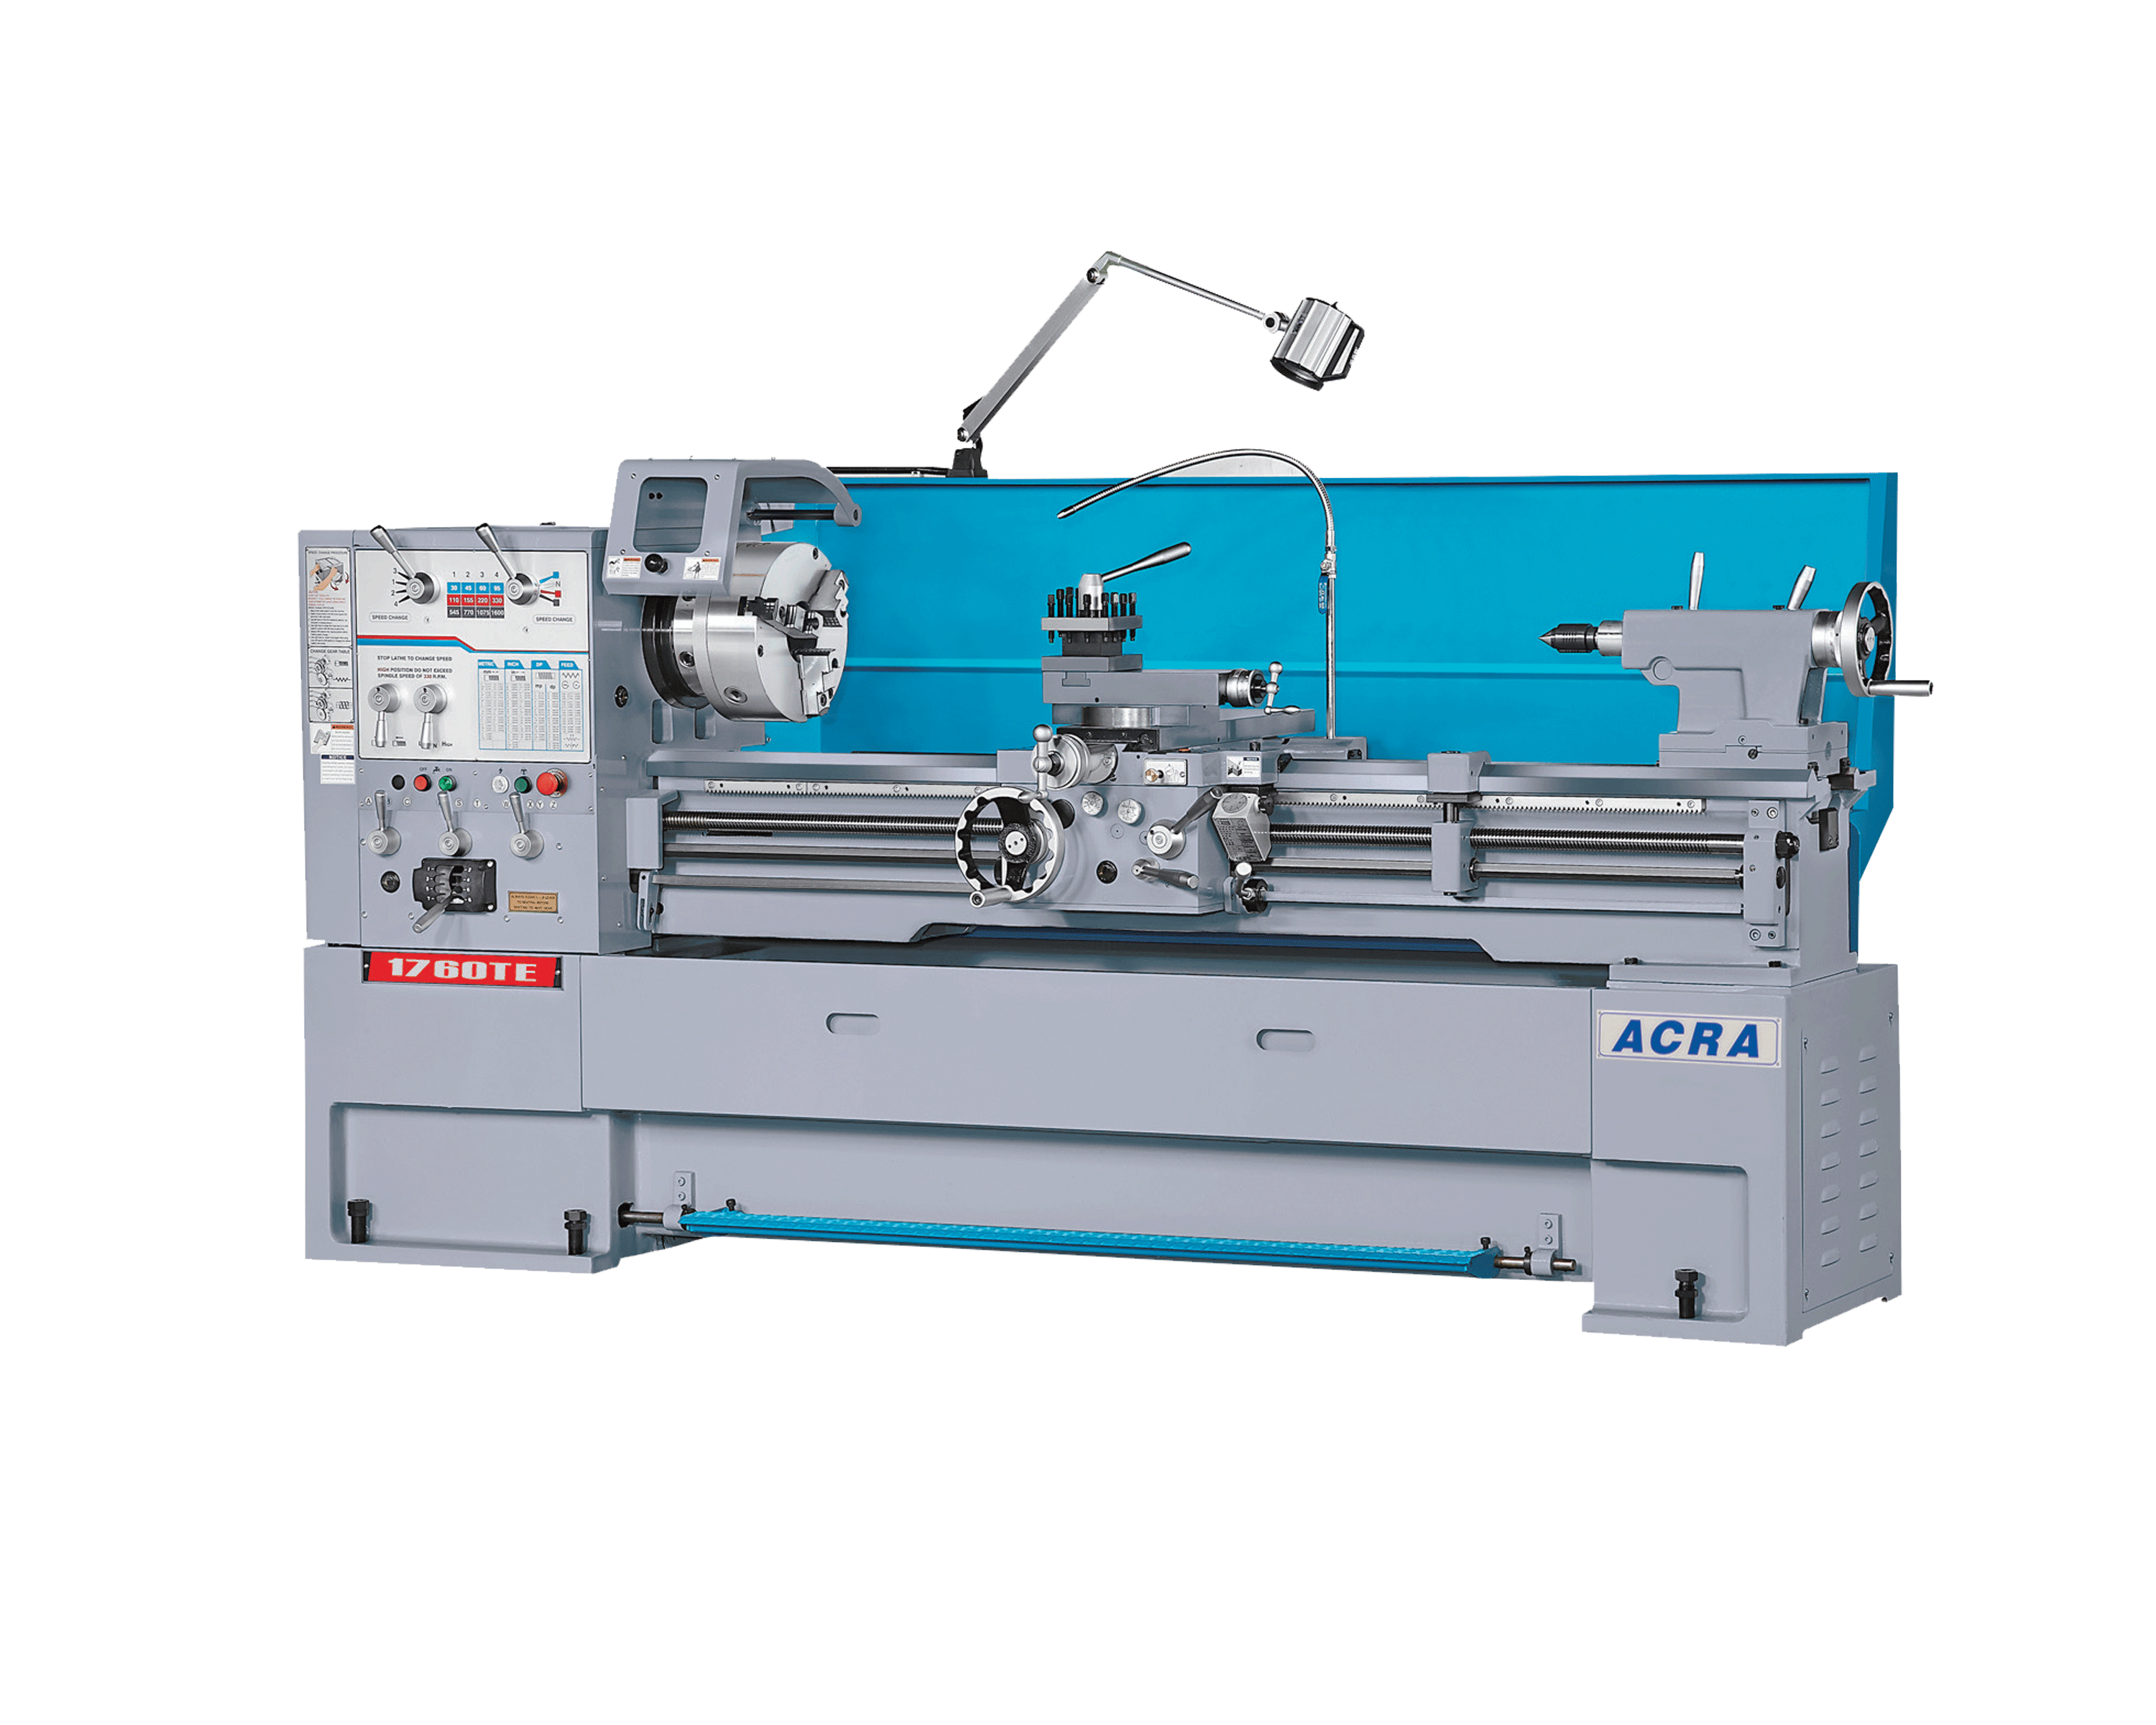 "17"" X 40"" ACRA MODEL 1740TE (2-1/2"" BORE) PRECISION HIGH SPEED GAP BED ENGINE LATHE"